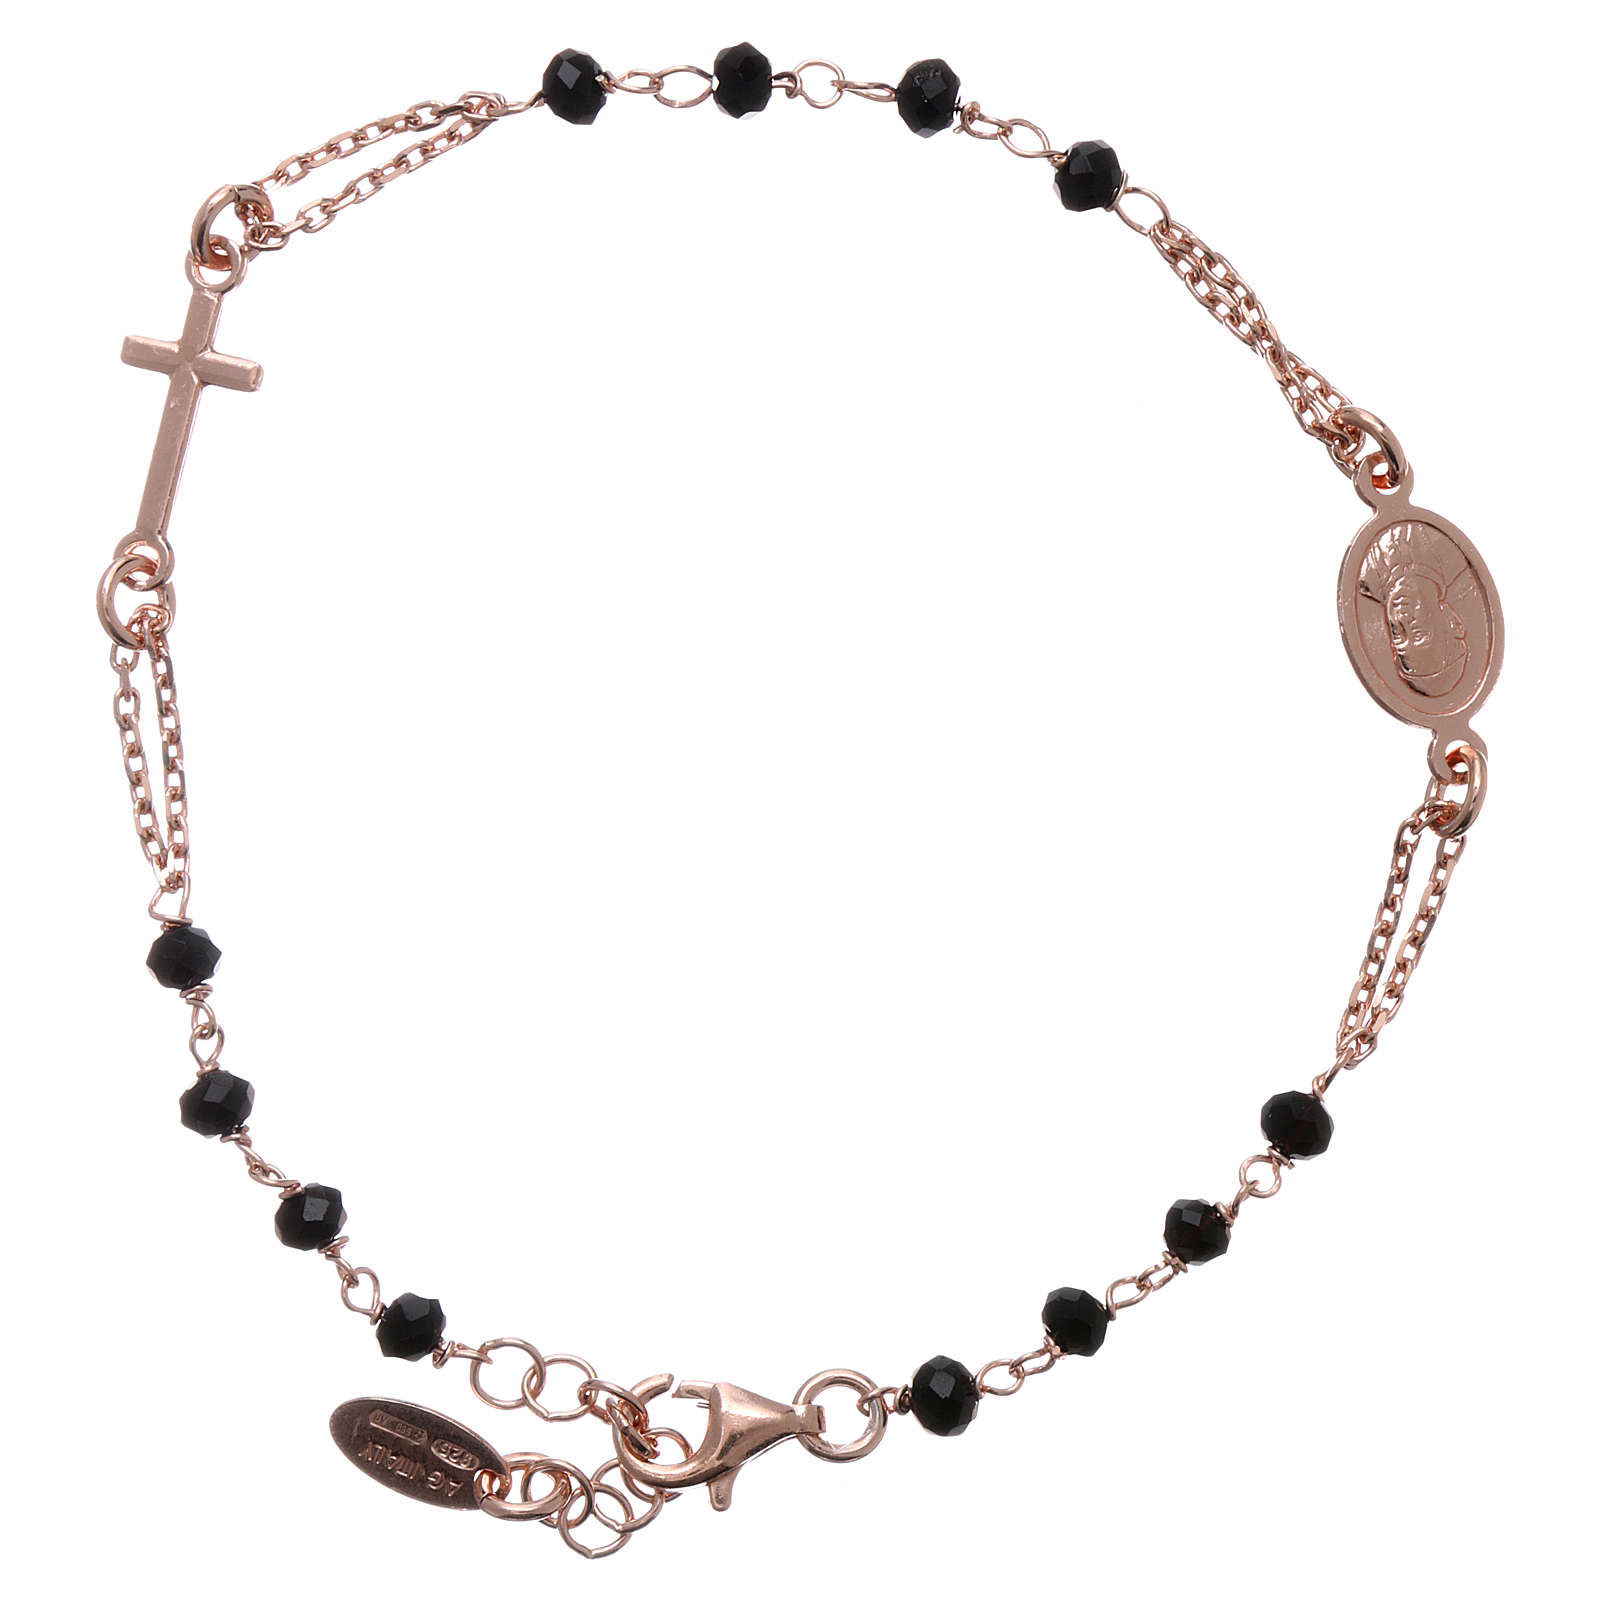 Rosary AMEN Bracelet silver 925 black crystals, Rosè finish 4